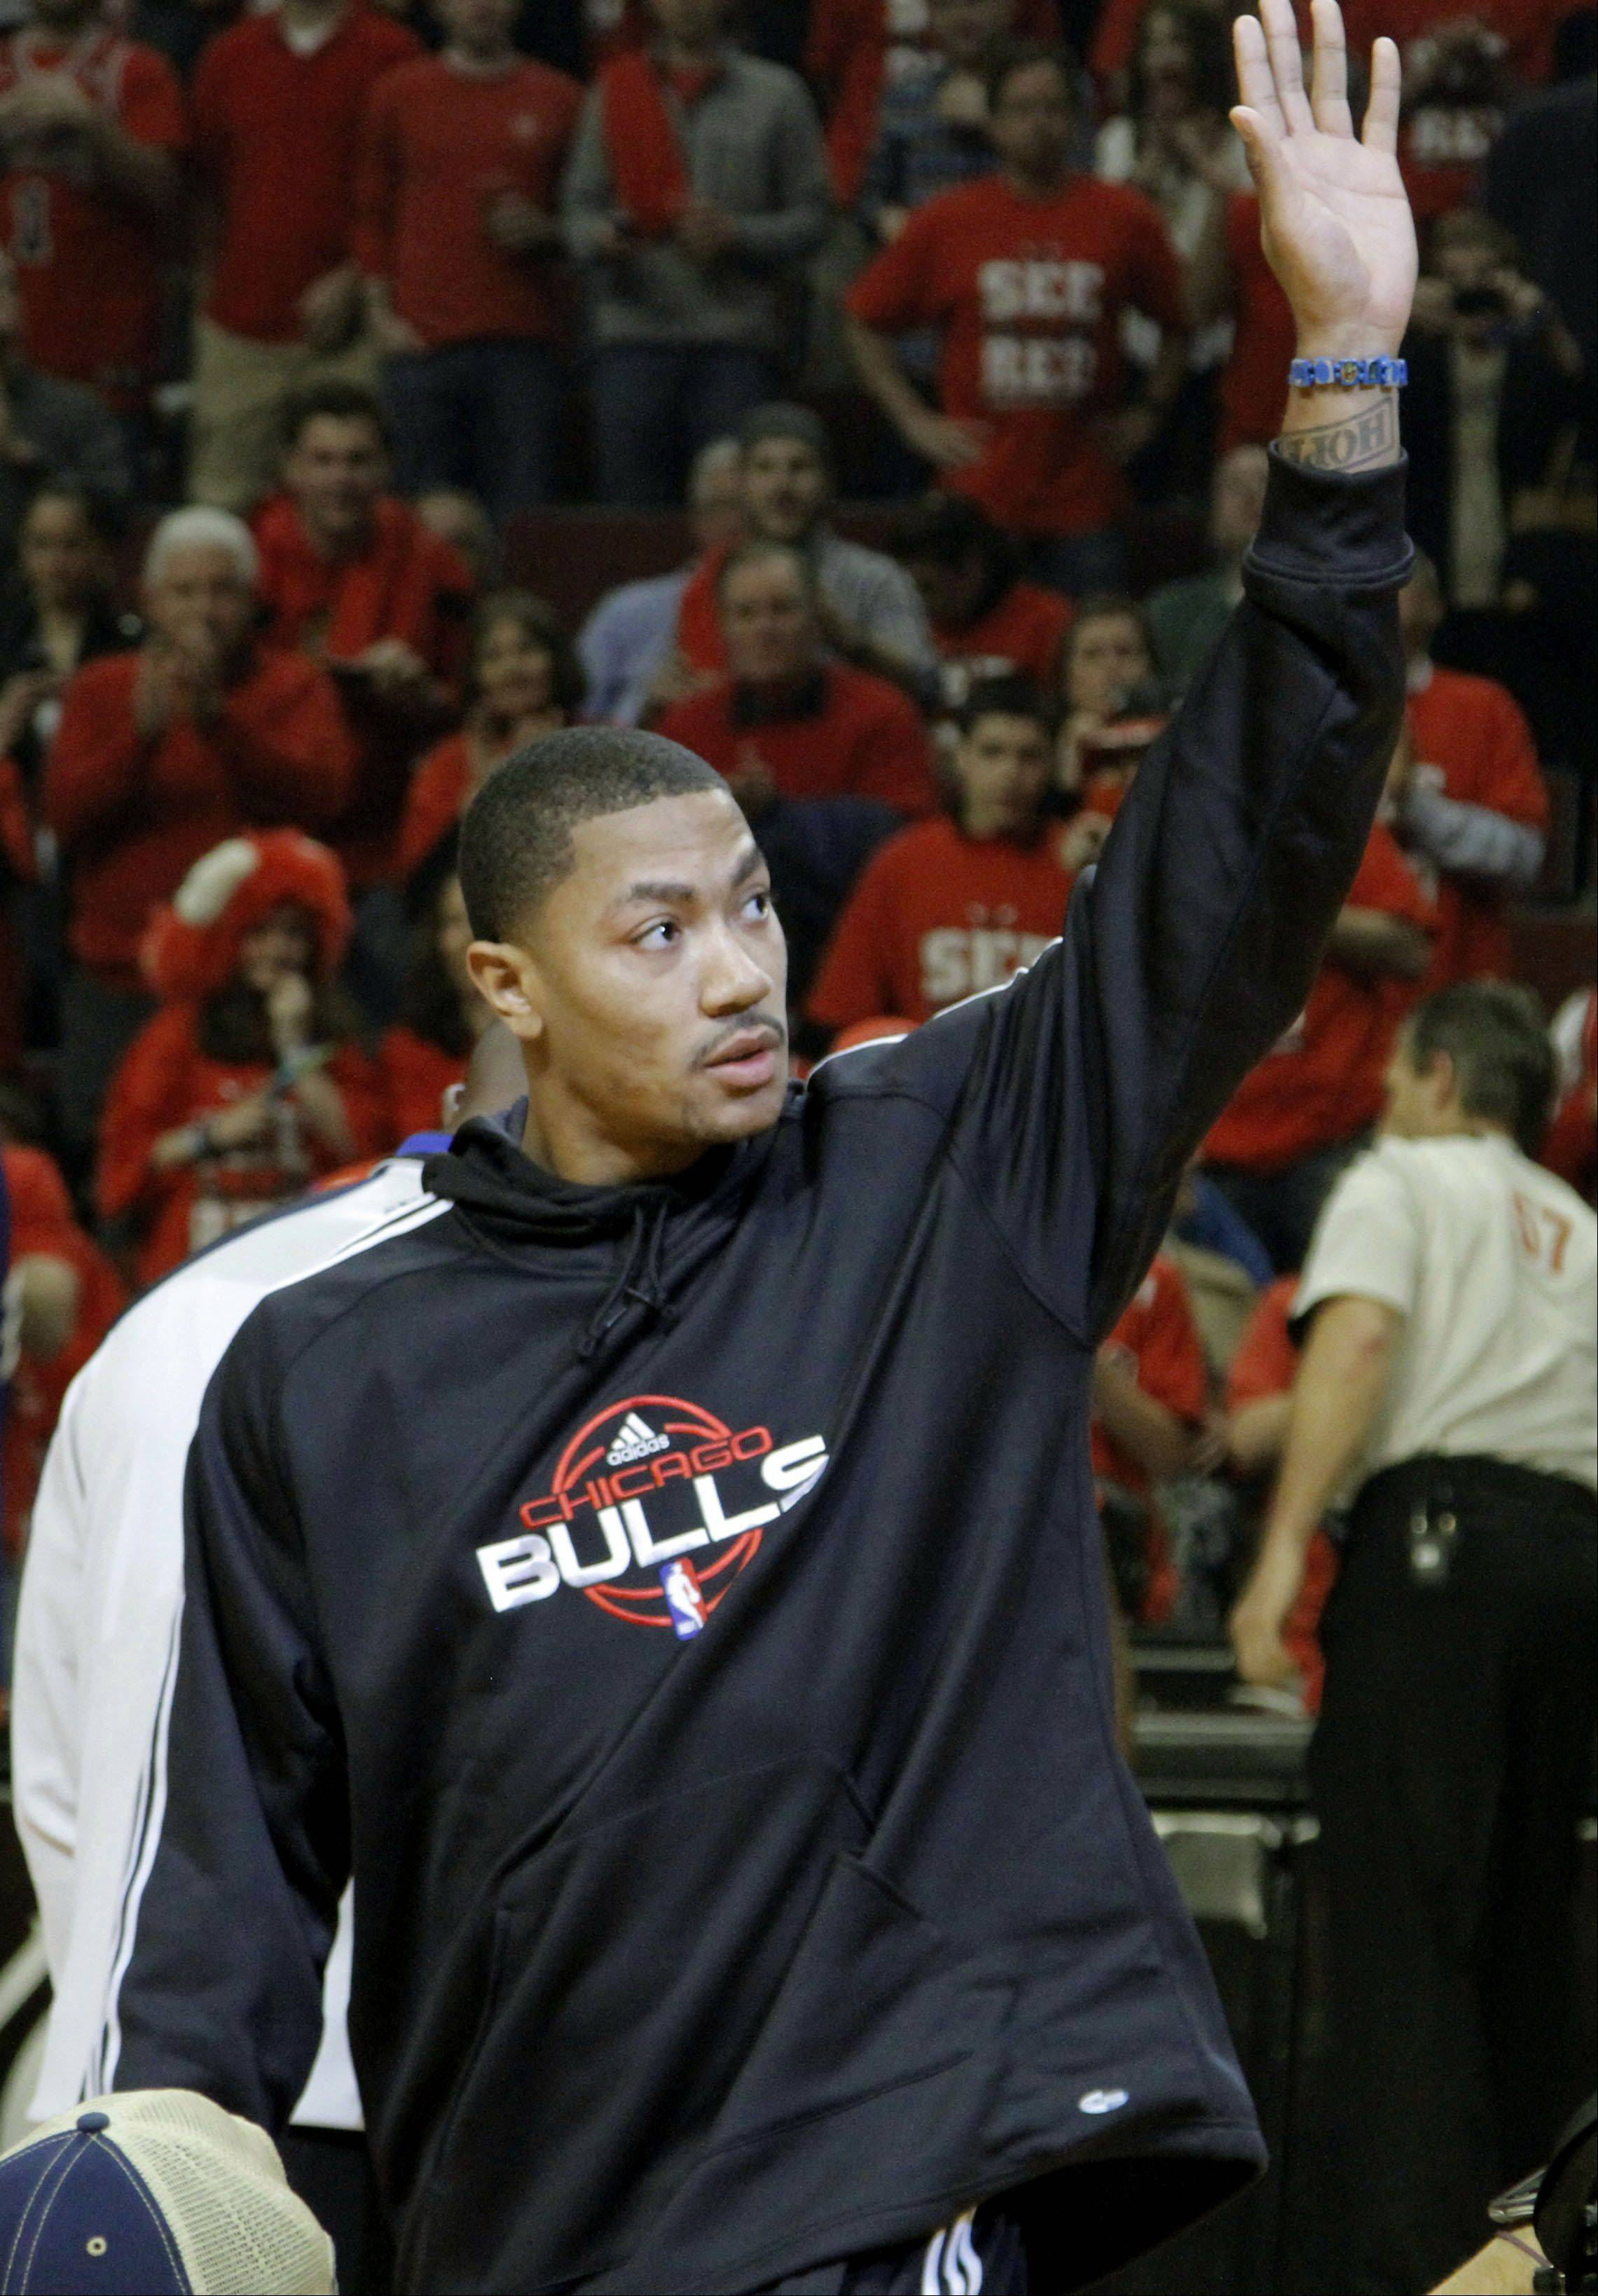 Chicago Bulls' Derrick Rose waves to the crowd after bringing out the game ball.